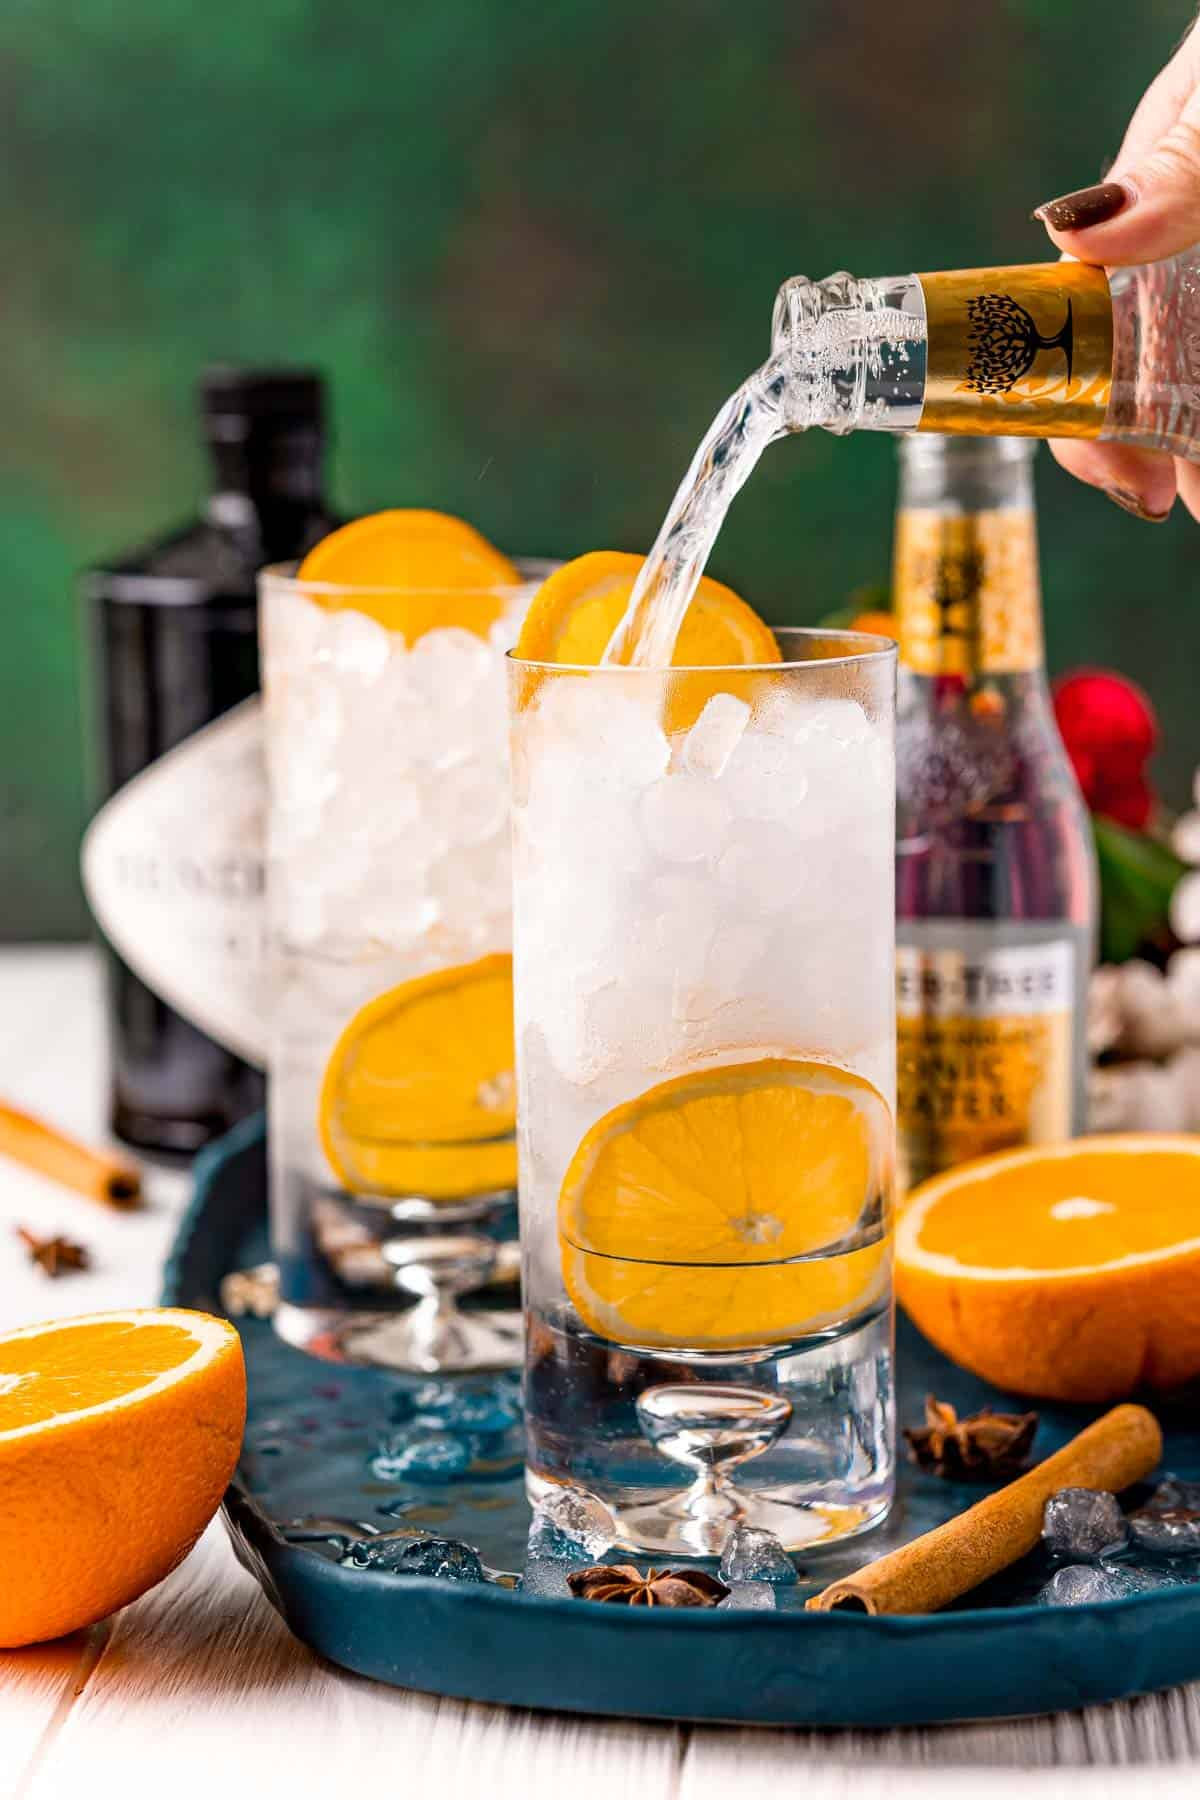 Tonic being poured into a glass with ice and orange slices.